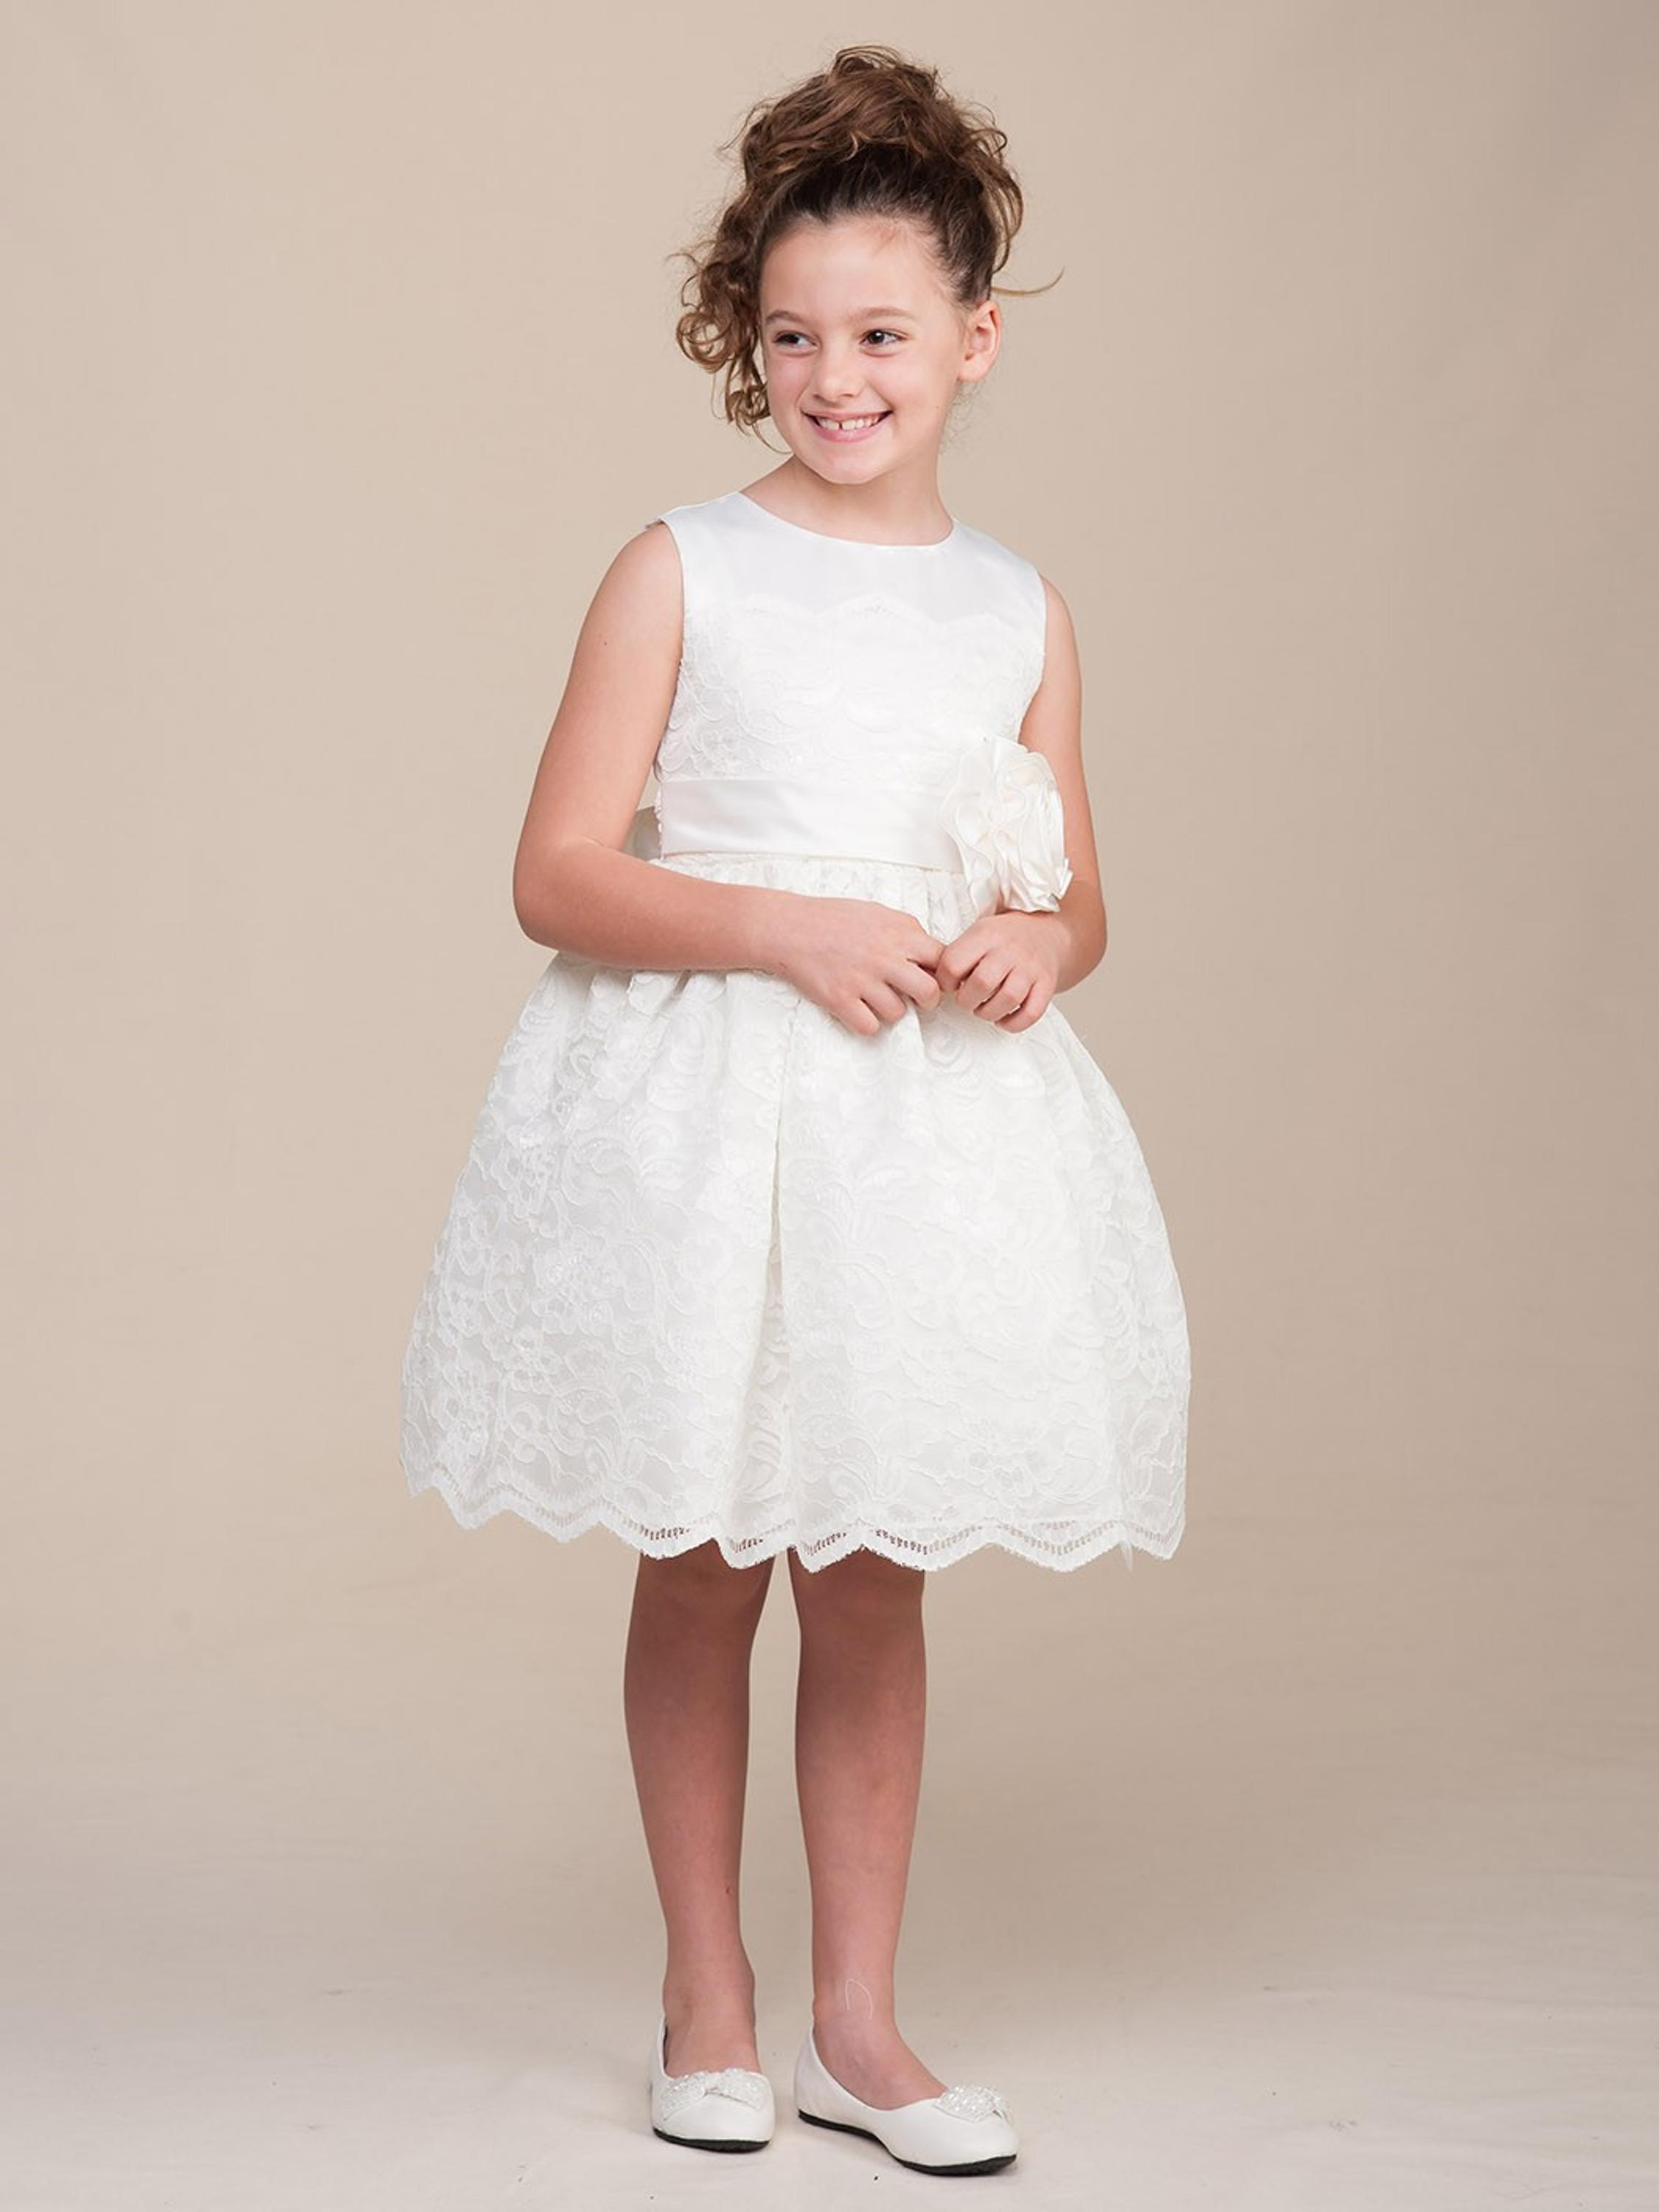 Short Flower Girls Dresses For Wedding Gowns Knee-Length Kids Prom Dresses Lace Dress Girl Tulle Mother Daughter Dresses short flower girls dresses for wedding gowns knee length kids prom dresses lace dress girl tulle mother daughter dresses